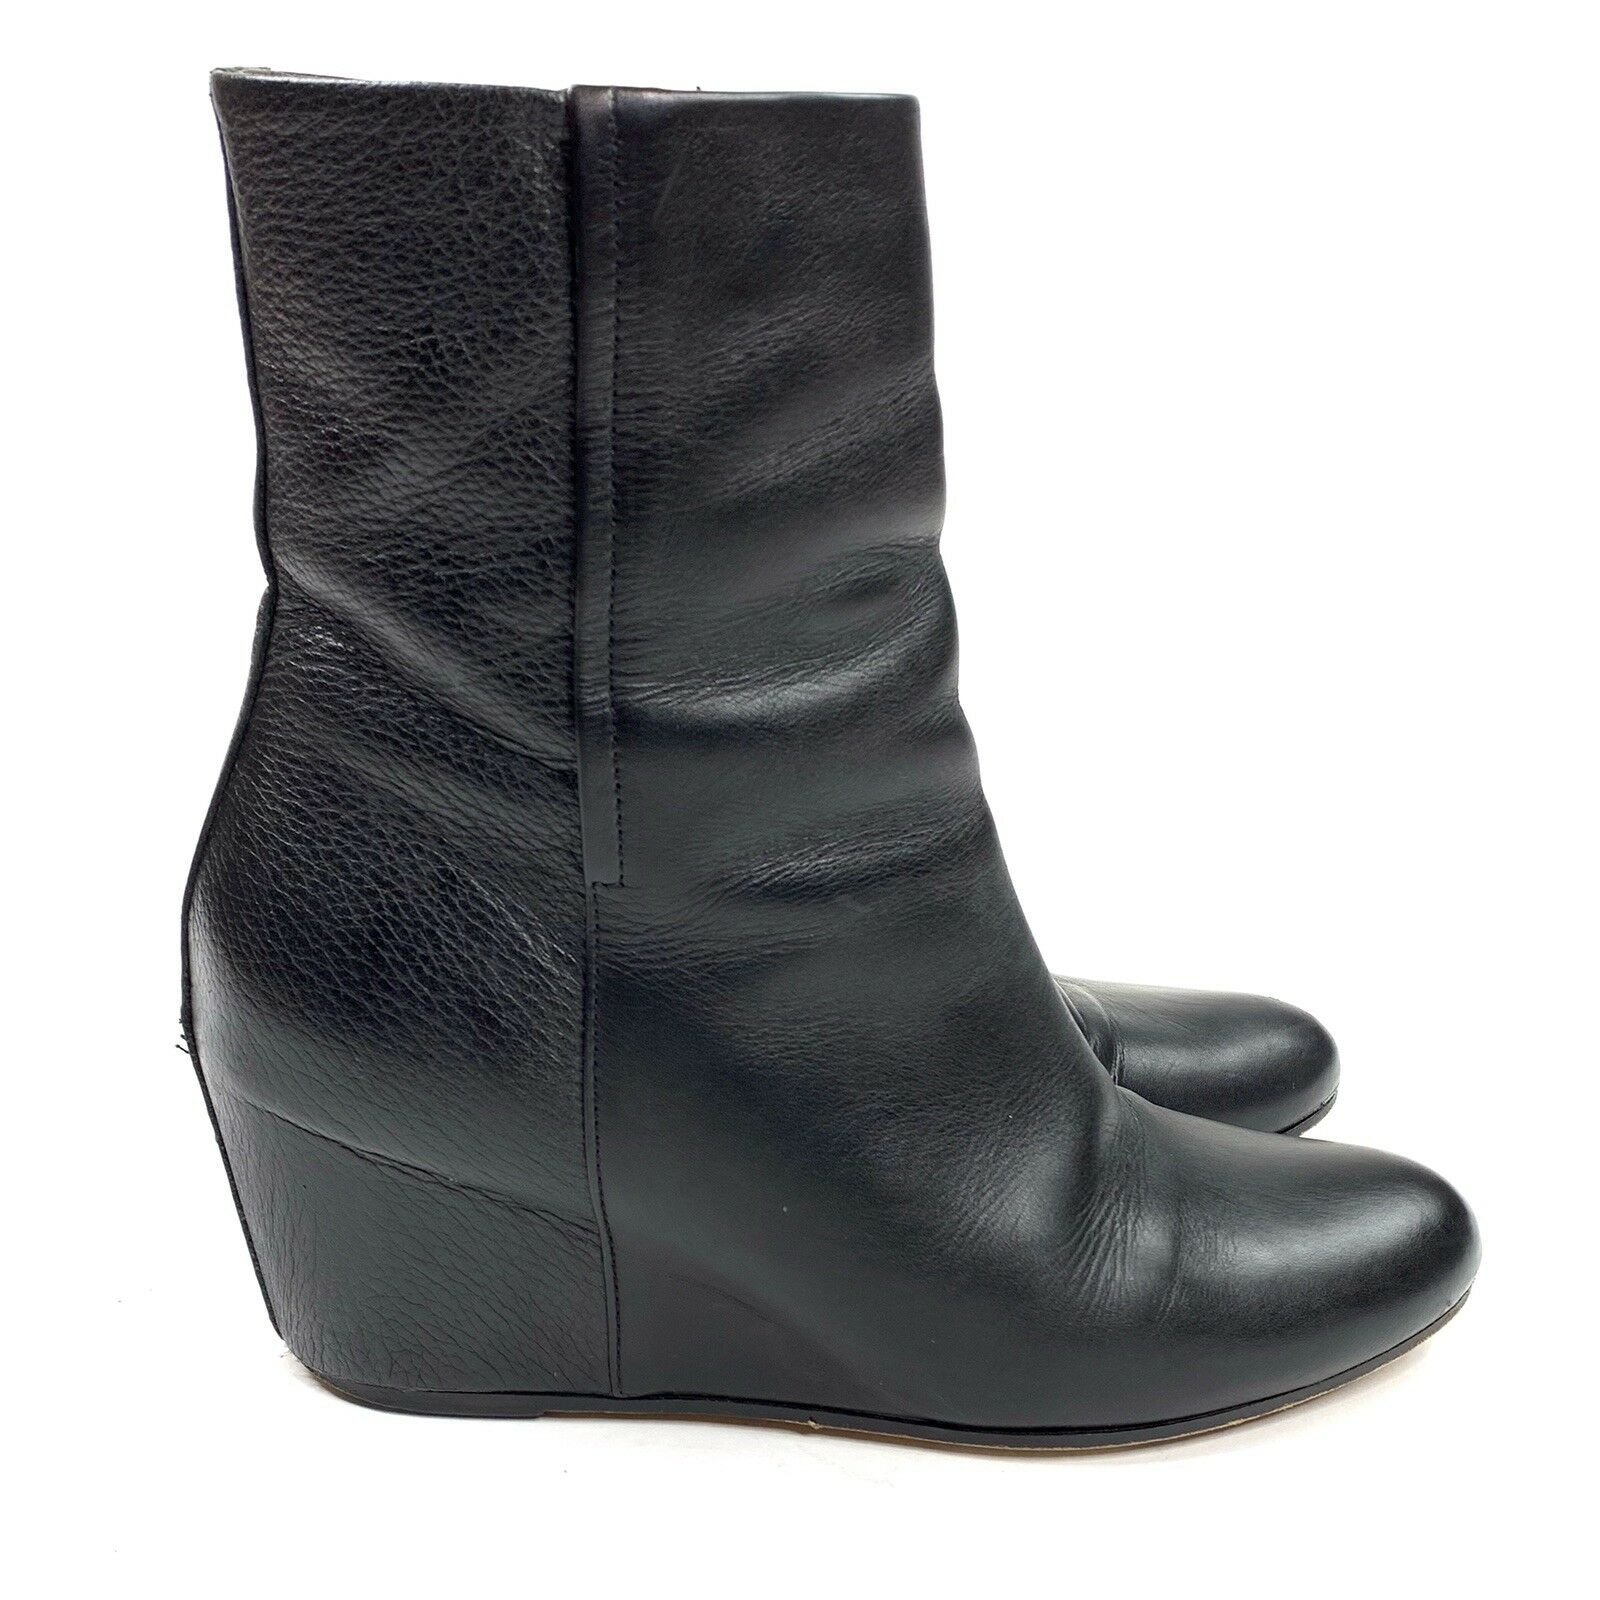 Vince Michela Wedge Booties Womens Size 9.5 EU41 Black Leather Covered Wedge